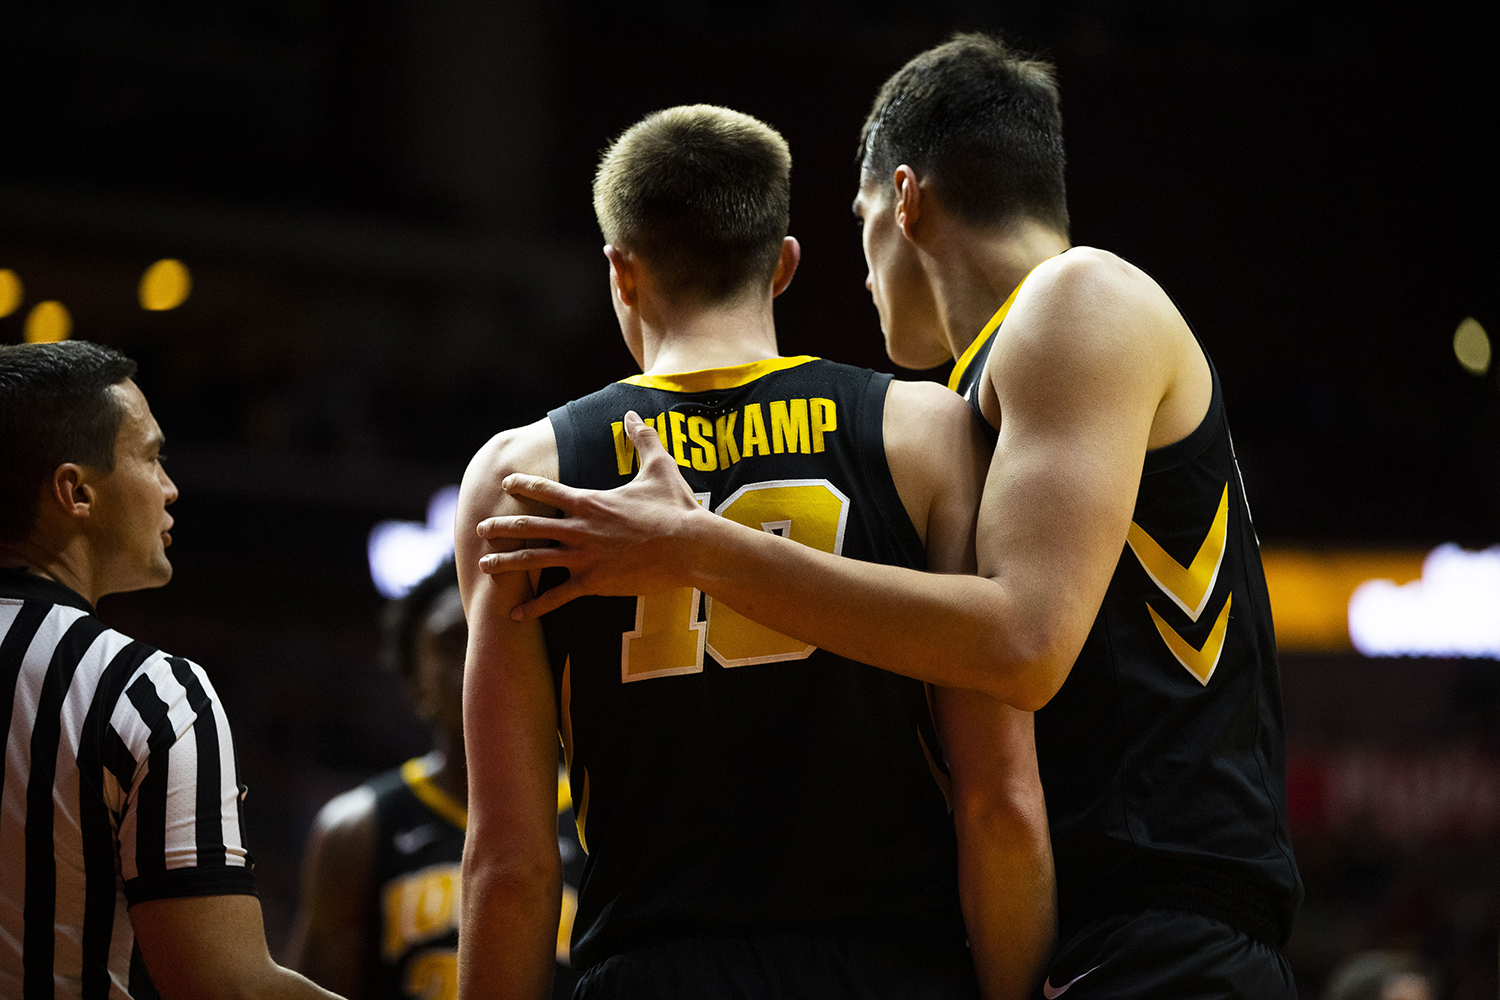 Iowa%27s+Luka+Garza+pats+Joe+Wieskamp+on+the+back+during+the+Iowa%2FUNI+men%27s+basketball+game+at+Wells+Fargo+Arena+in+Des+Moines+on+Saturday%2C+Dec.+15%2C+2018.+The+Hawkeyes+defeated+the+Panthers%2C+77-54.+